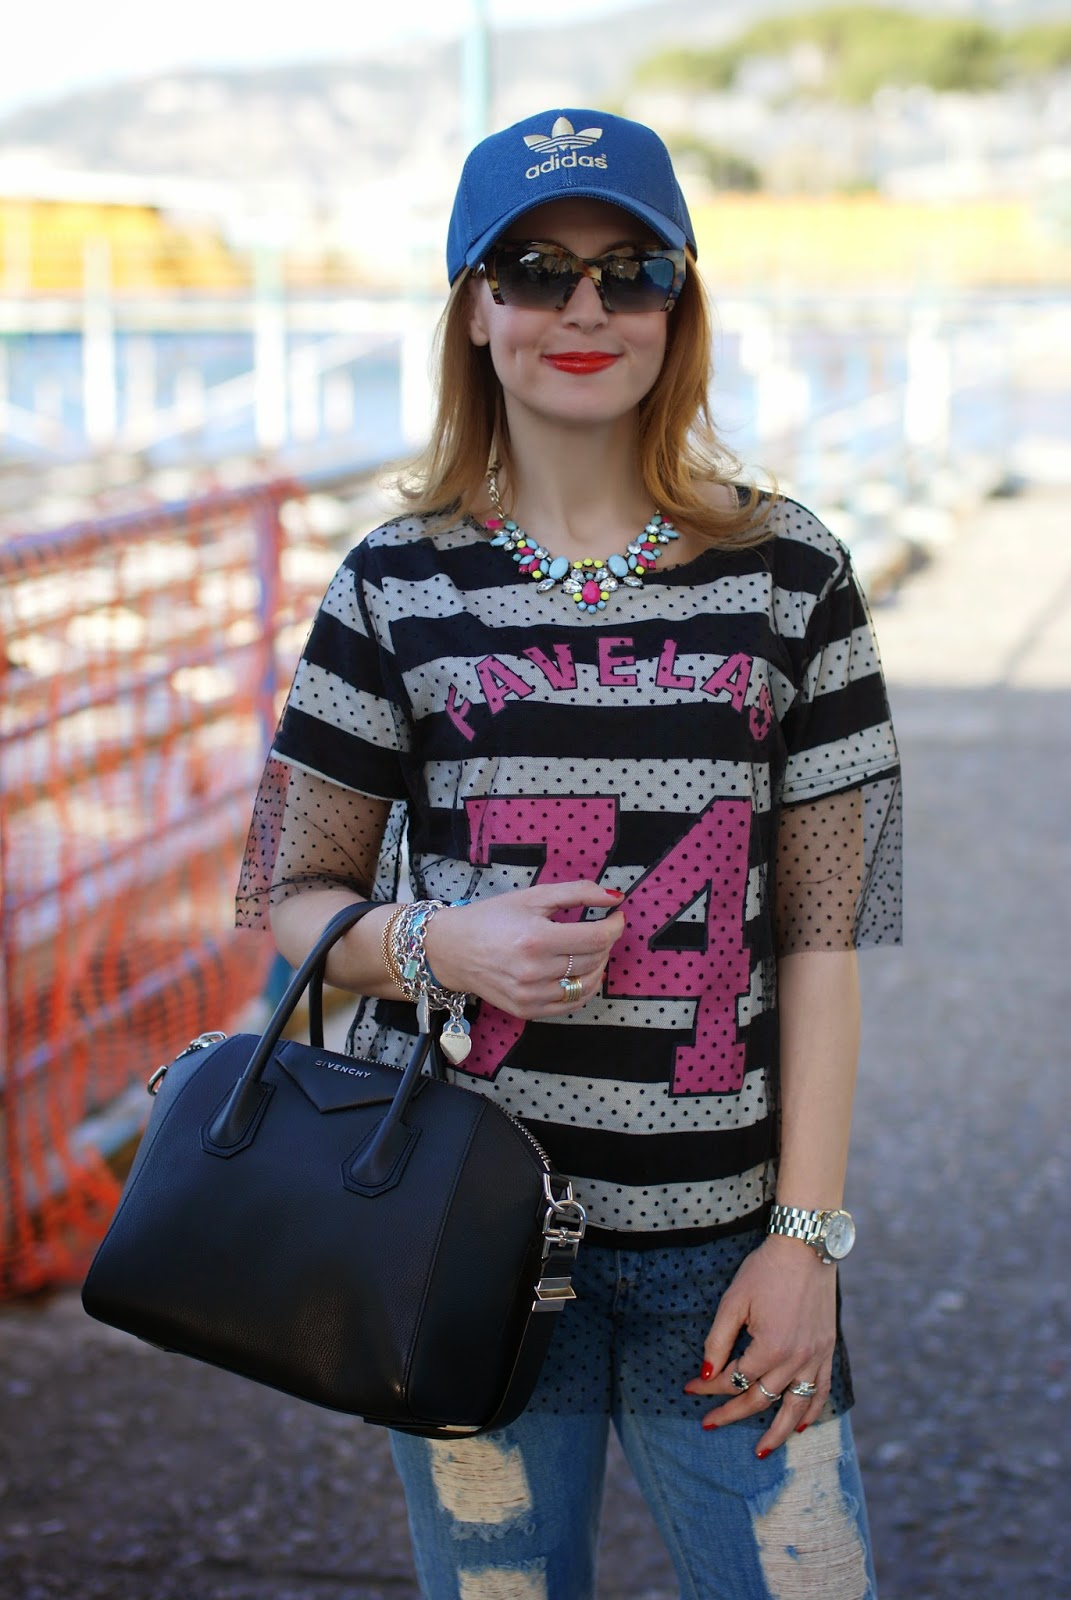 Kilibbi t-shirt, tulle on t.shirt, miu miu rasoir, adidas cap, Fashion and Cookies, fashion blogger